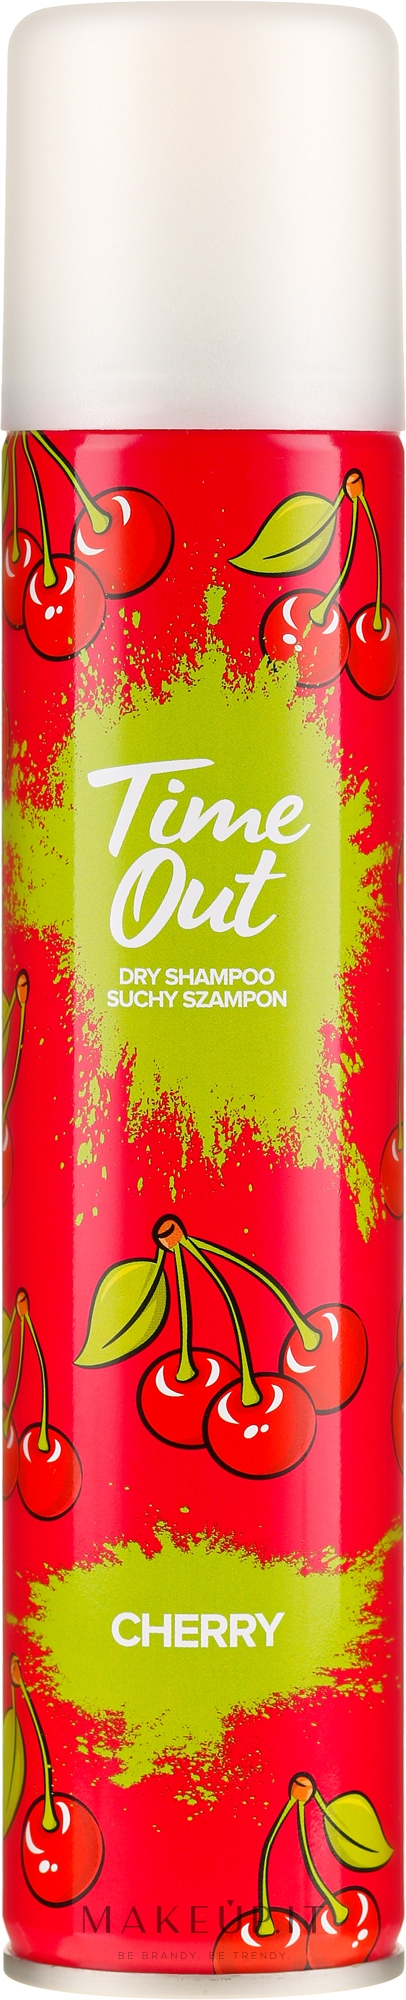 Shampoo secco - Time Out Dry Shampoo Cherry — foto 200 ml